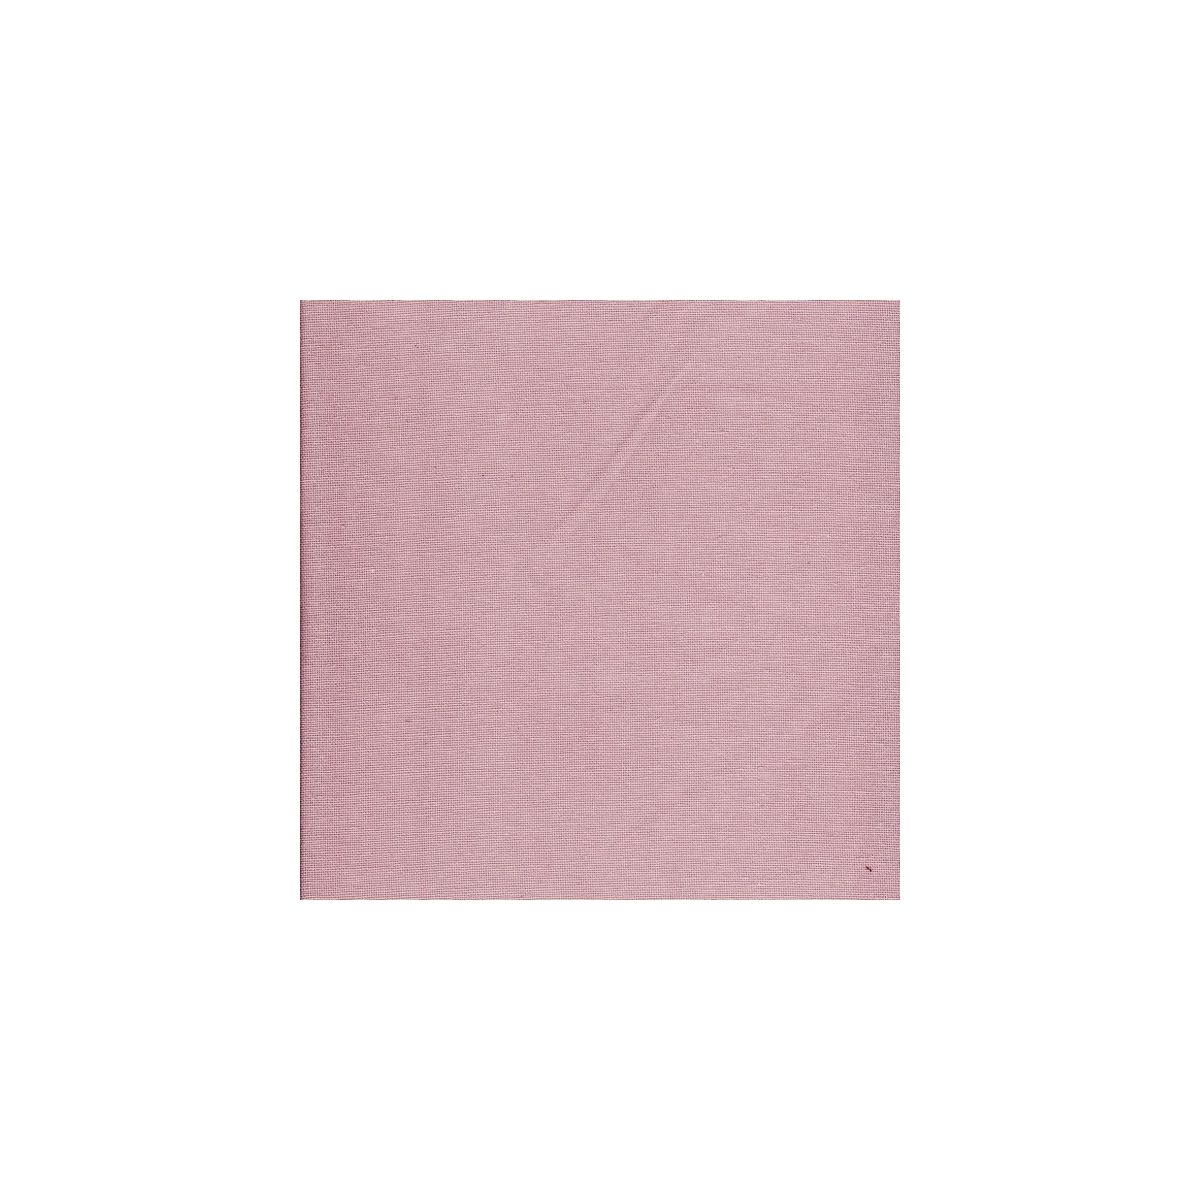 Tipi Tent dusty pink - Numero 74